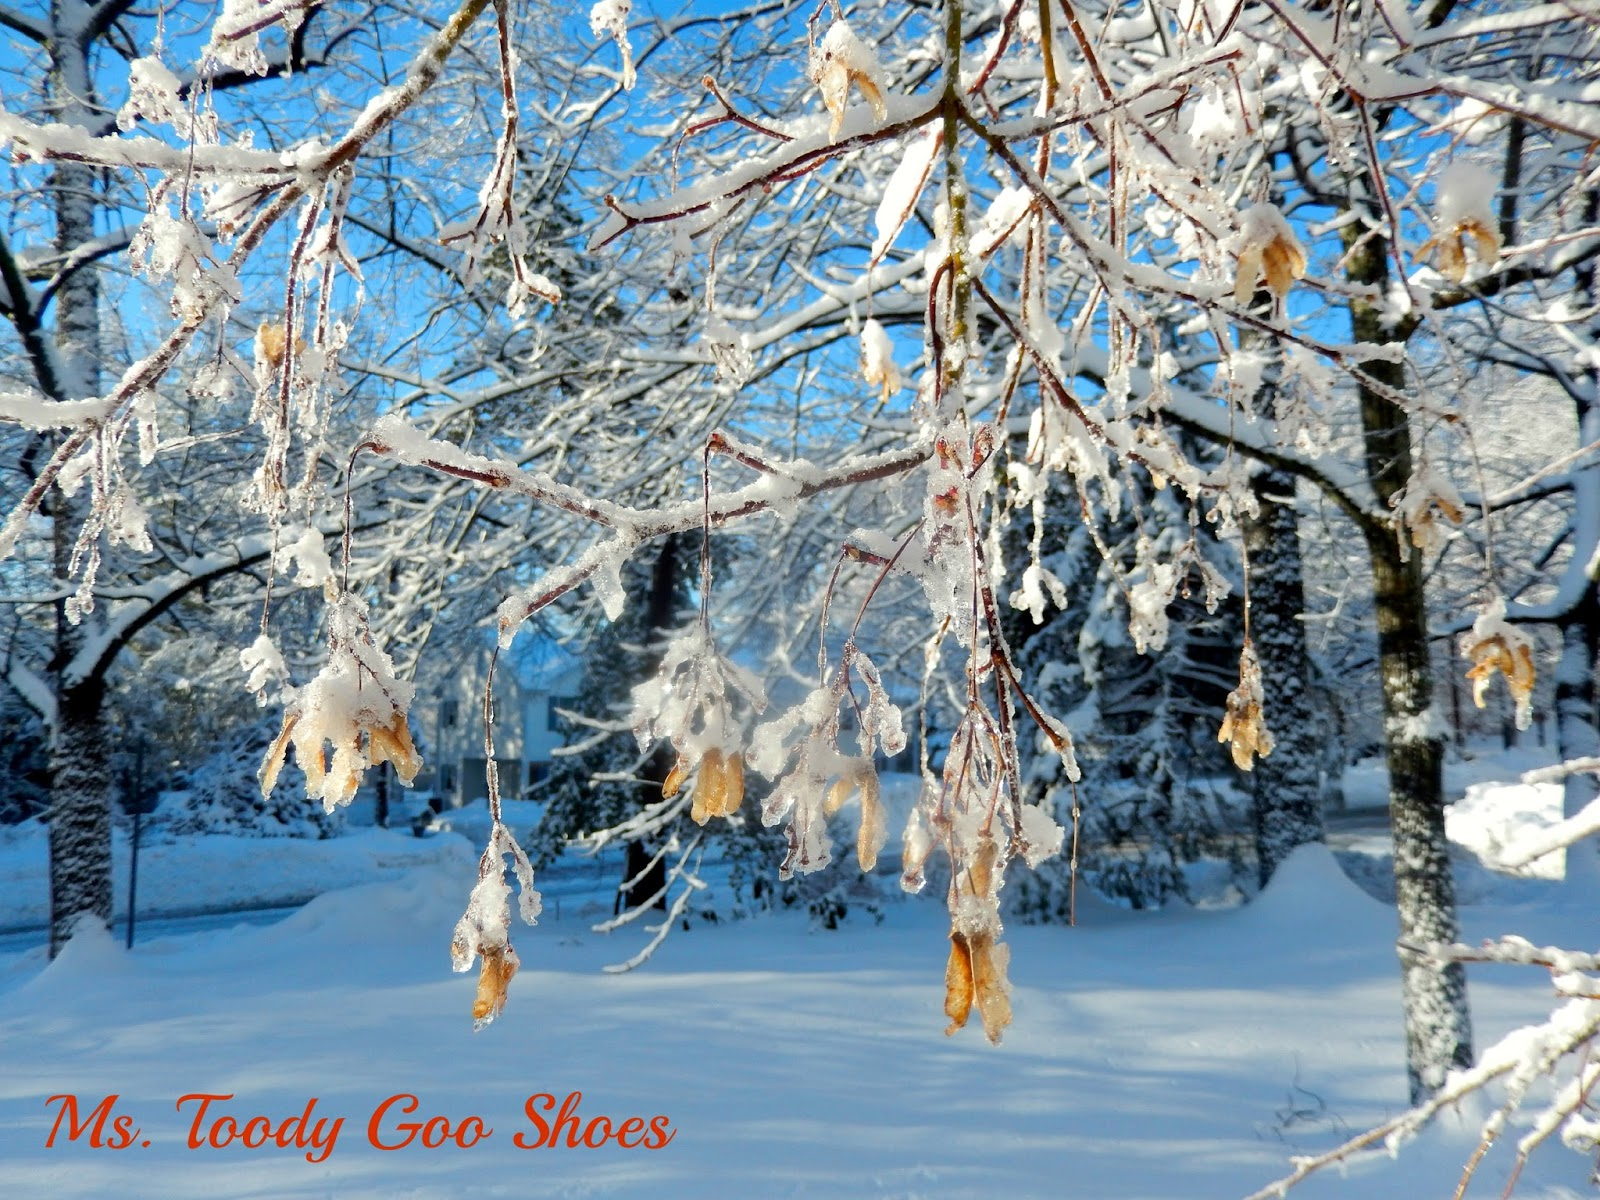 Winter Scenes --- Ms. Toody Goo Shoes